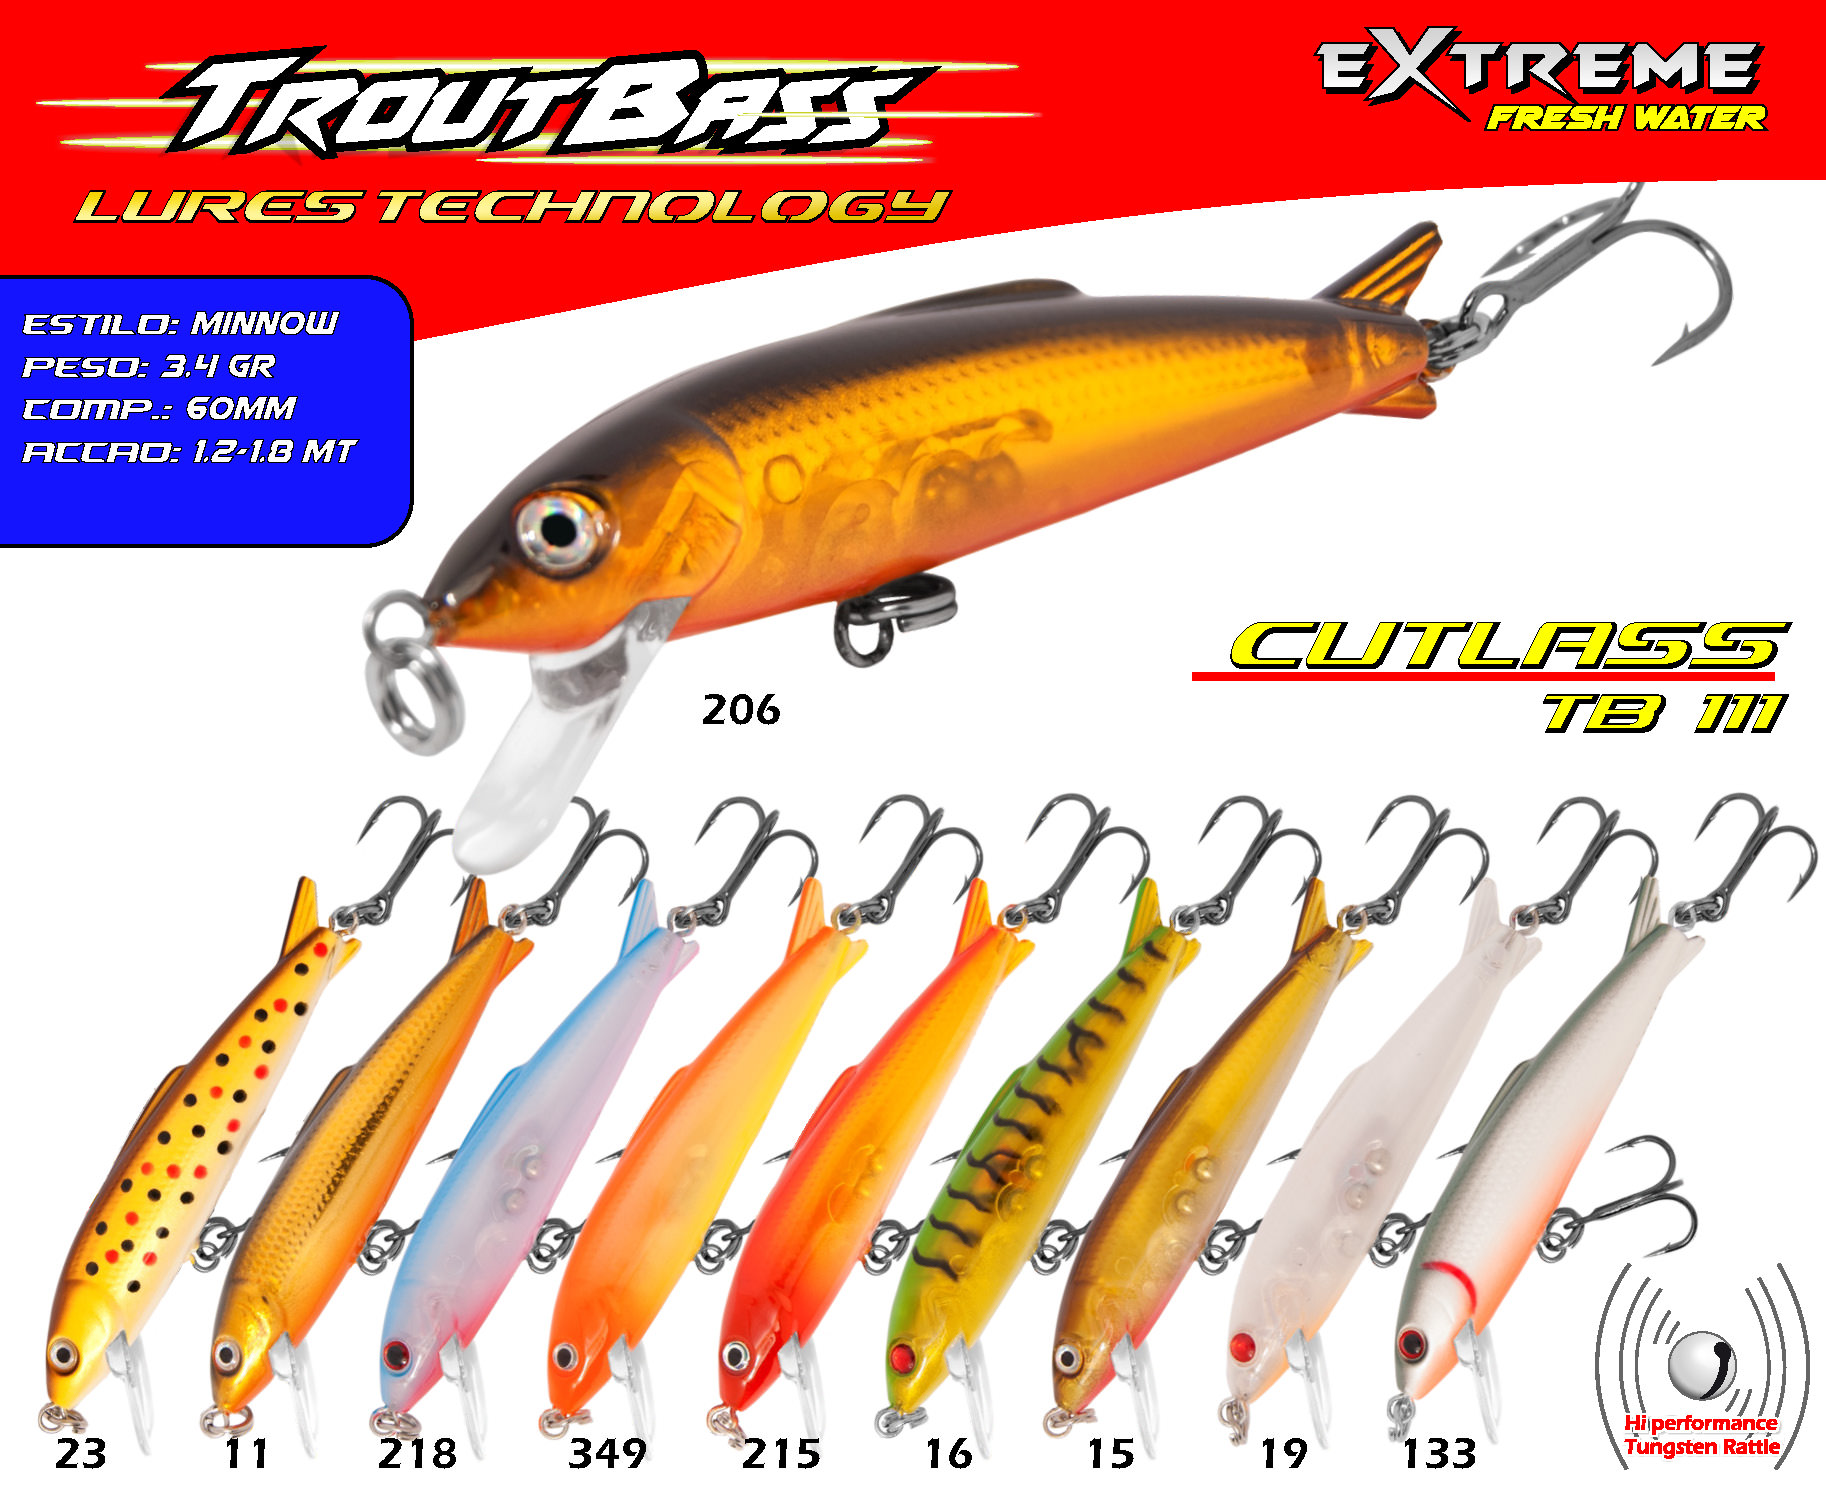 Troutbass Cutlass TB 111